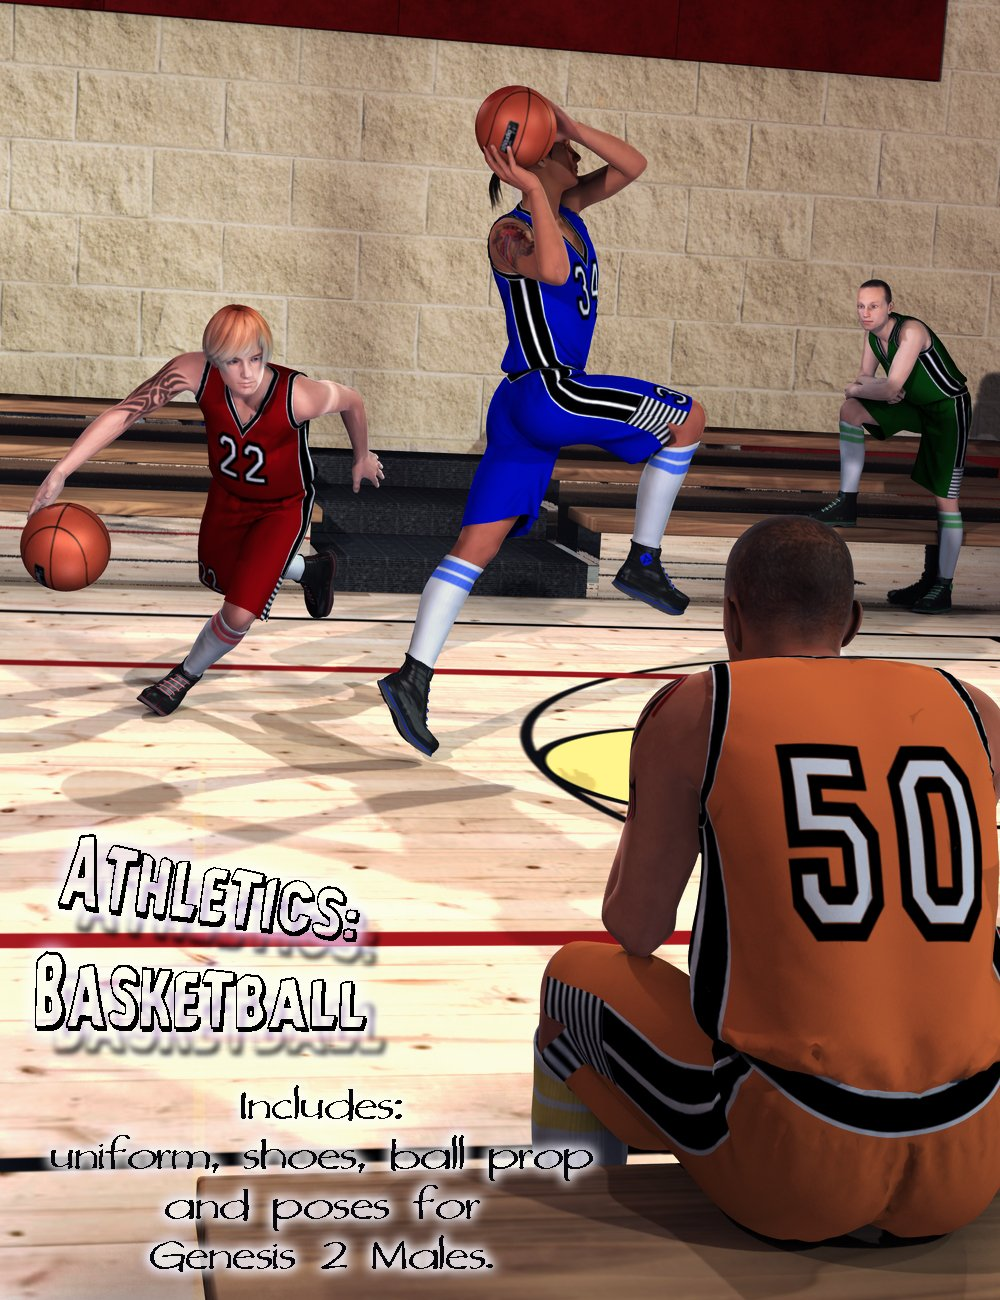 Athletics: Basketball for Genesis 2 Male(s) by: Aave NainenFeralFey, 3D Models by Daz 3D